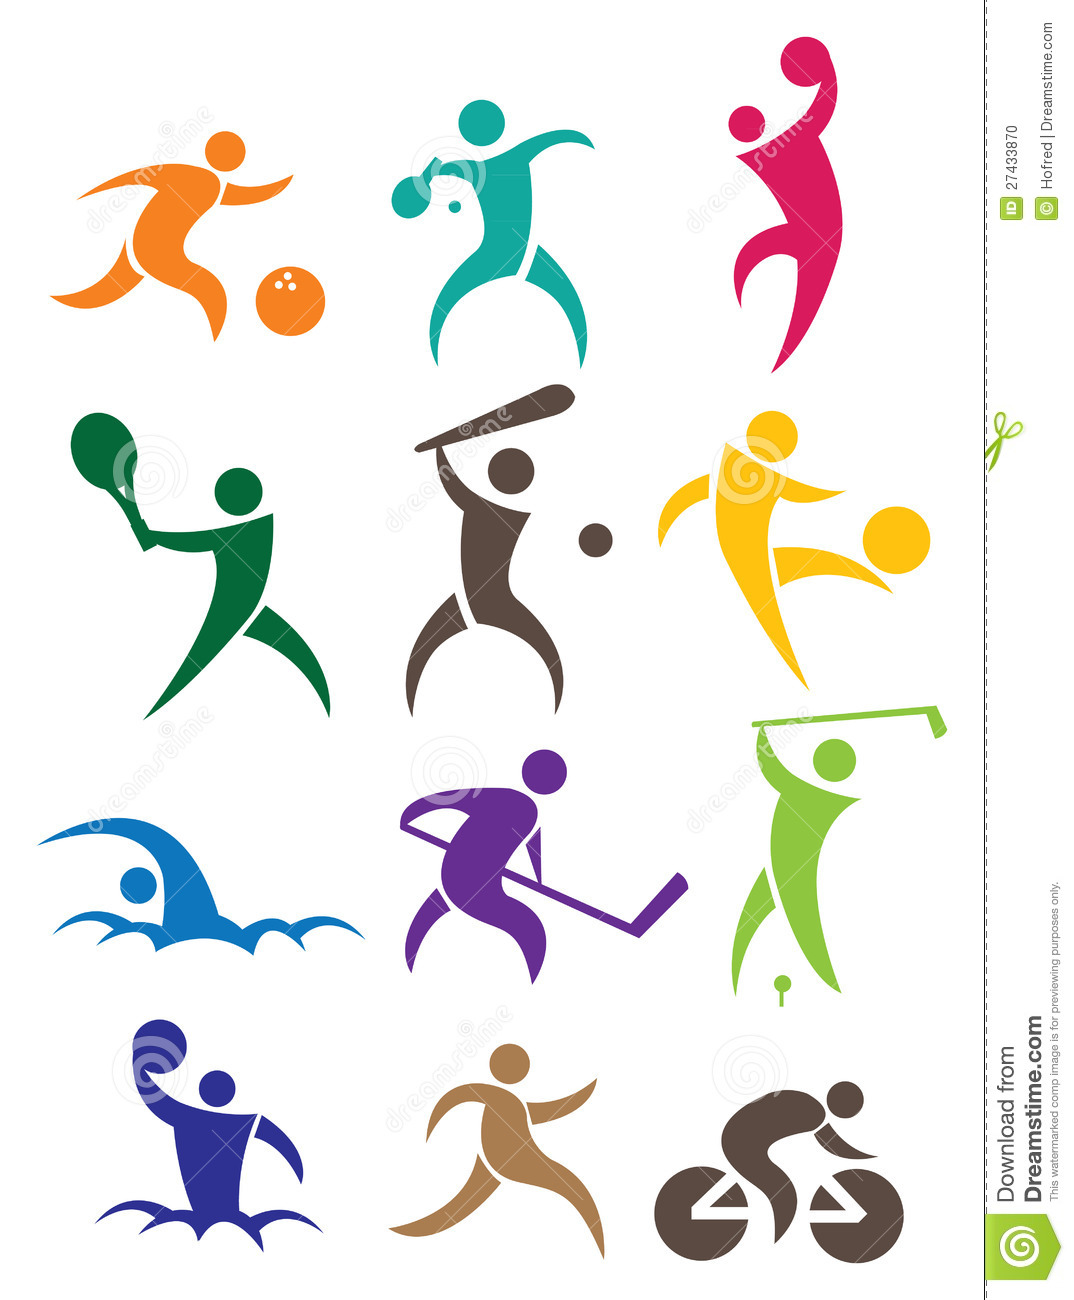 sports icon stock vector illustration of fitness football clip art transparent football clip art borders